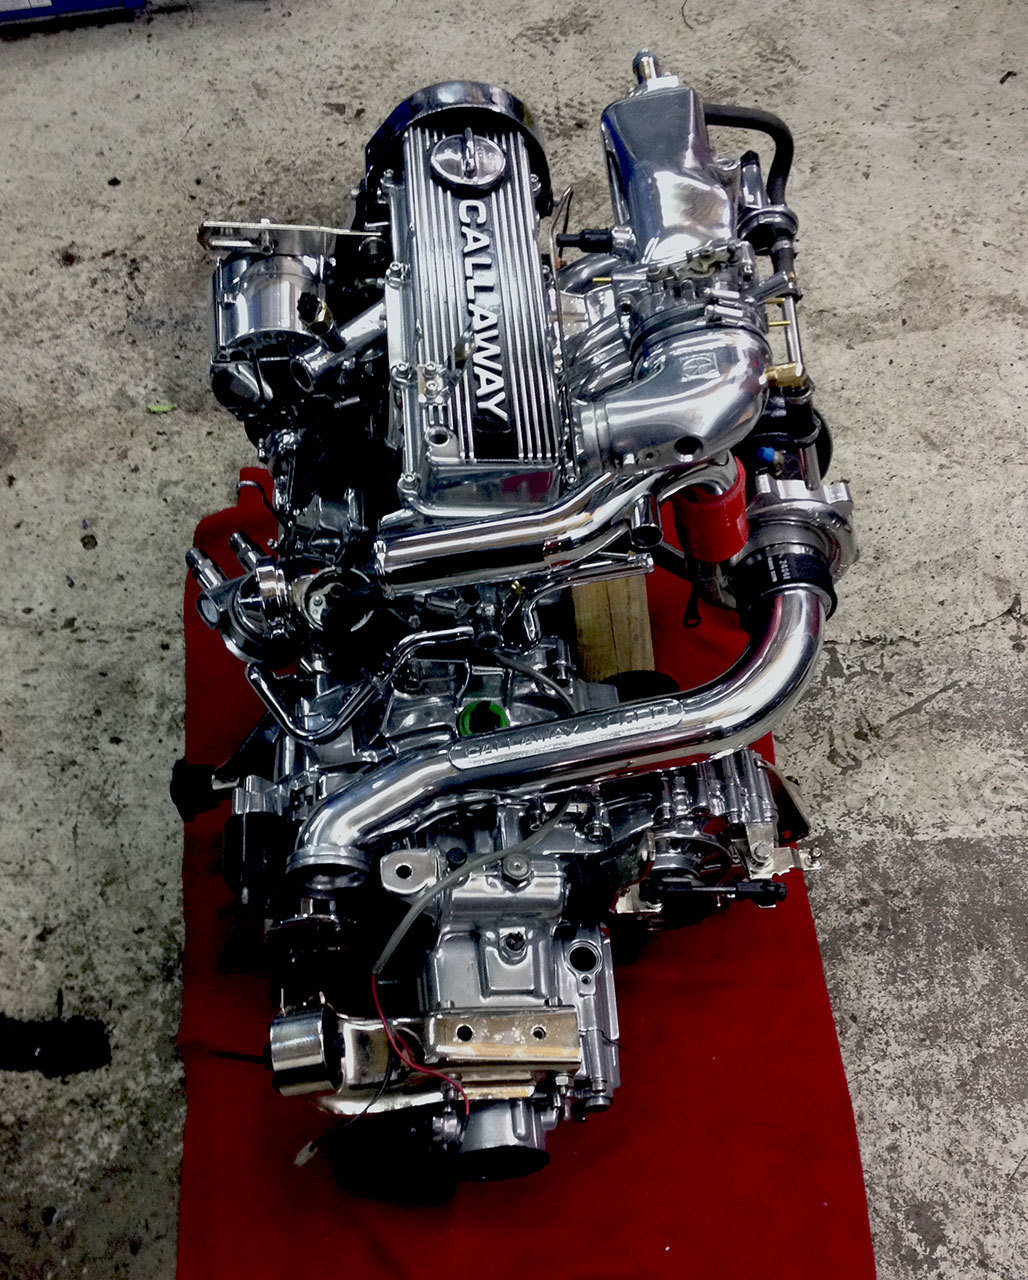 77 Rabbit engine